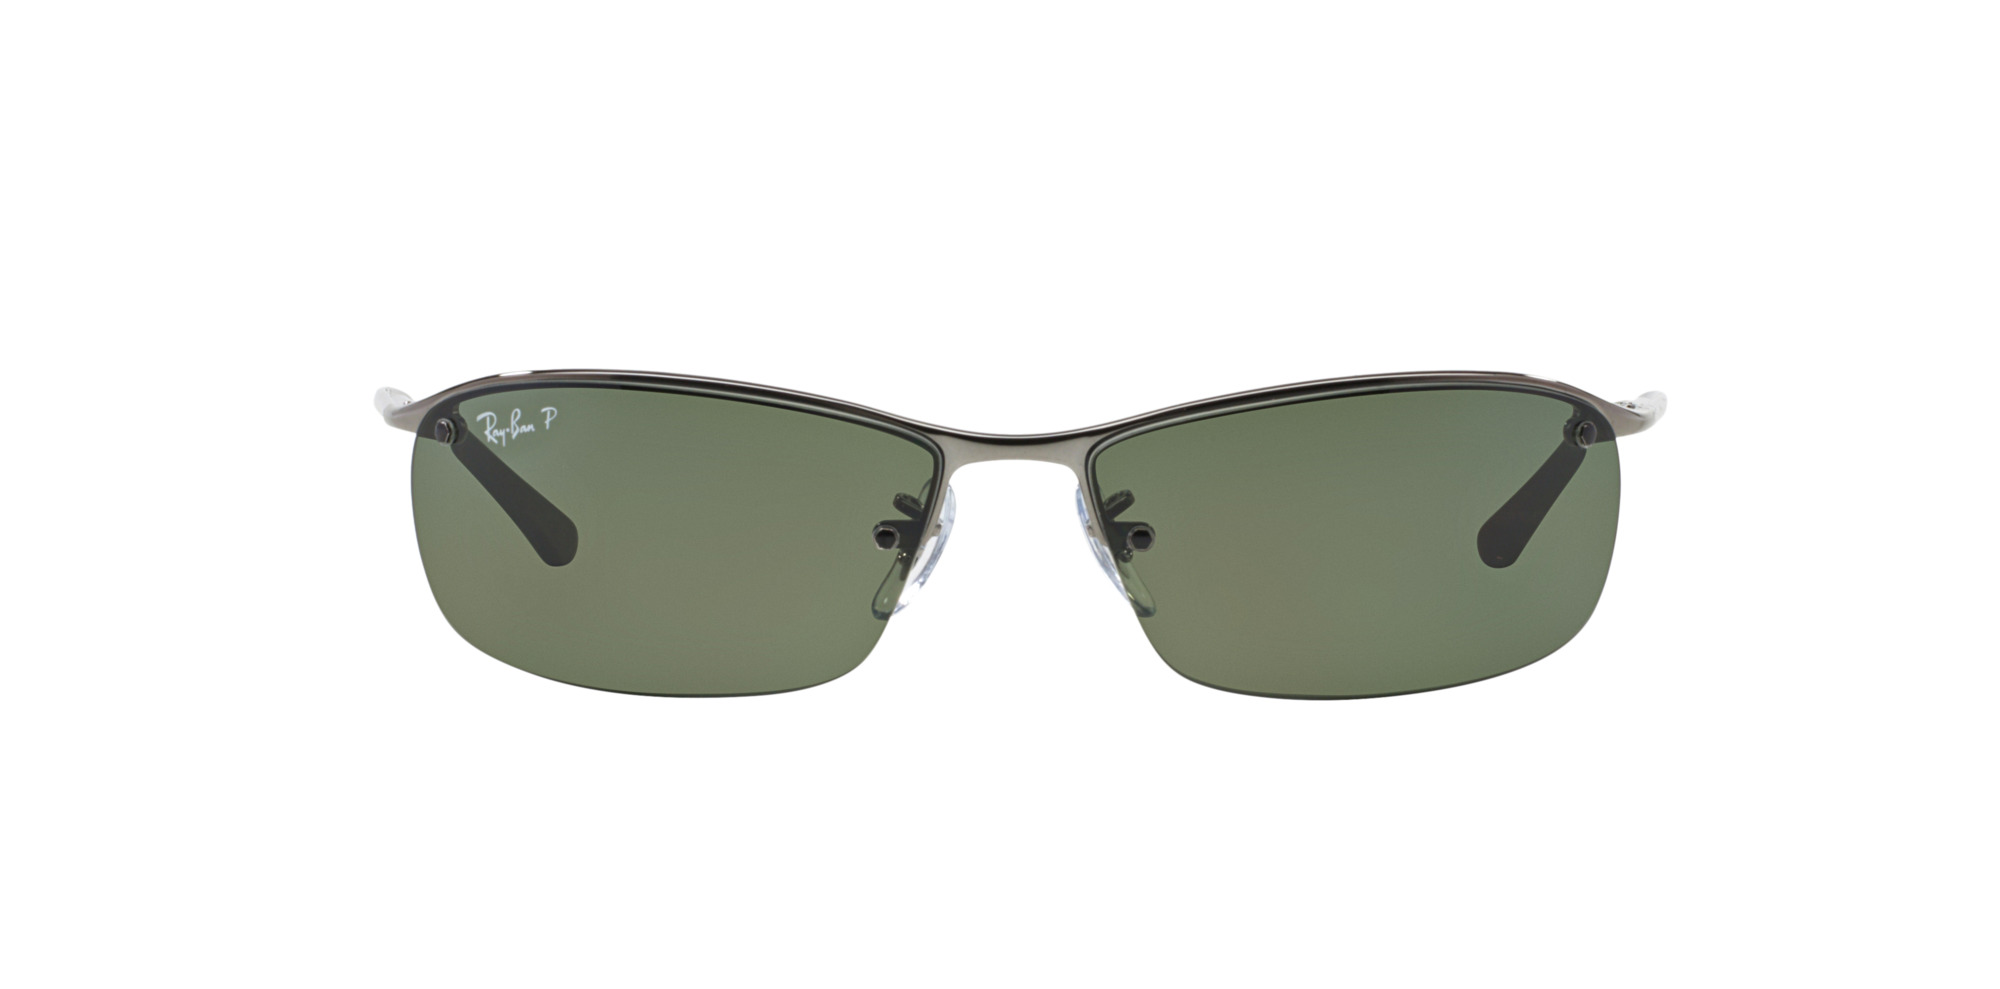 RAY-BAN SHOOTER RB 3183 004/9A POLARIZADAS-360